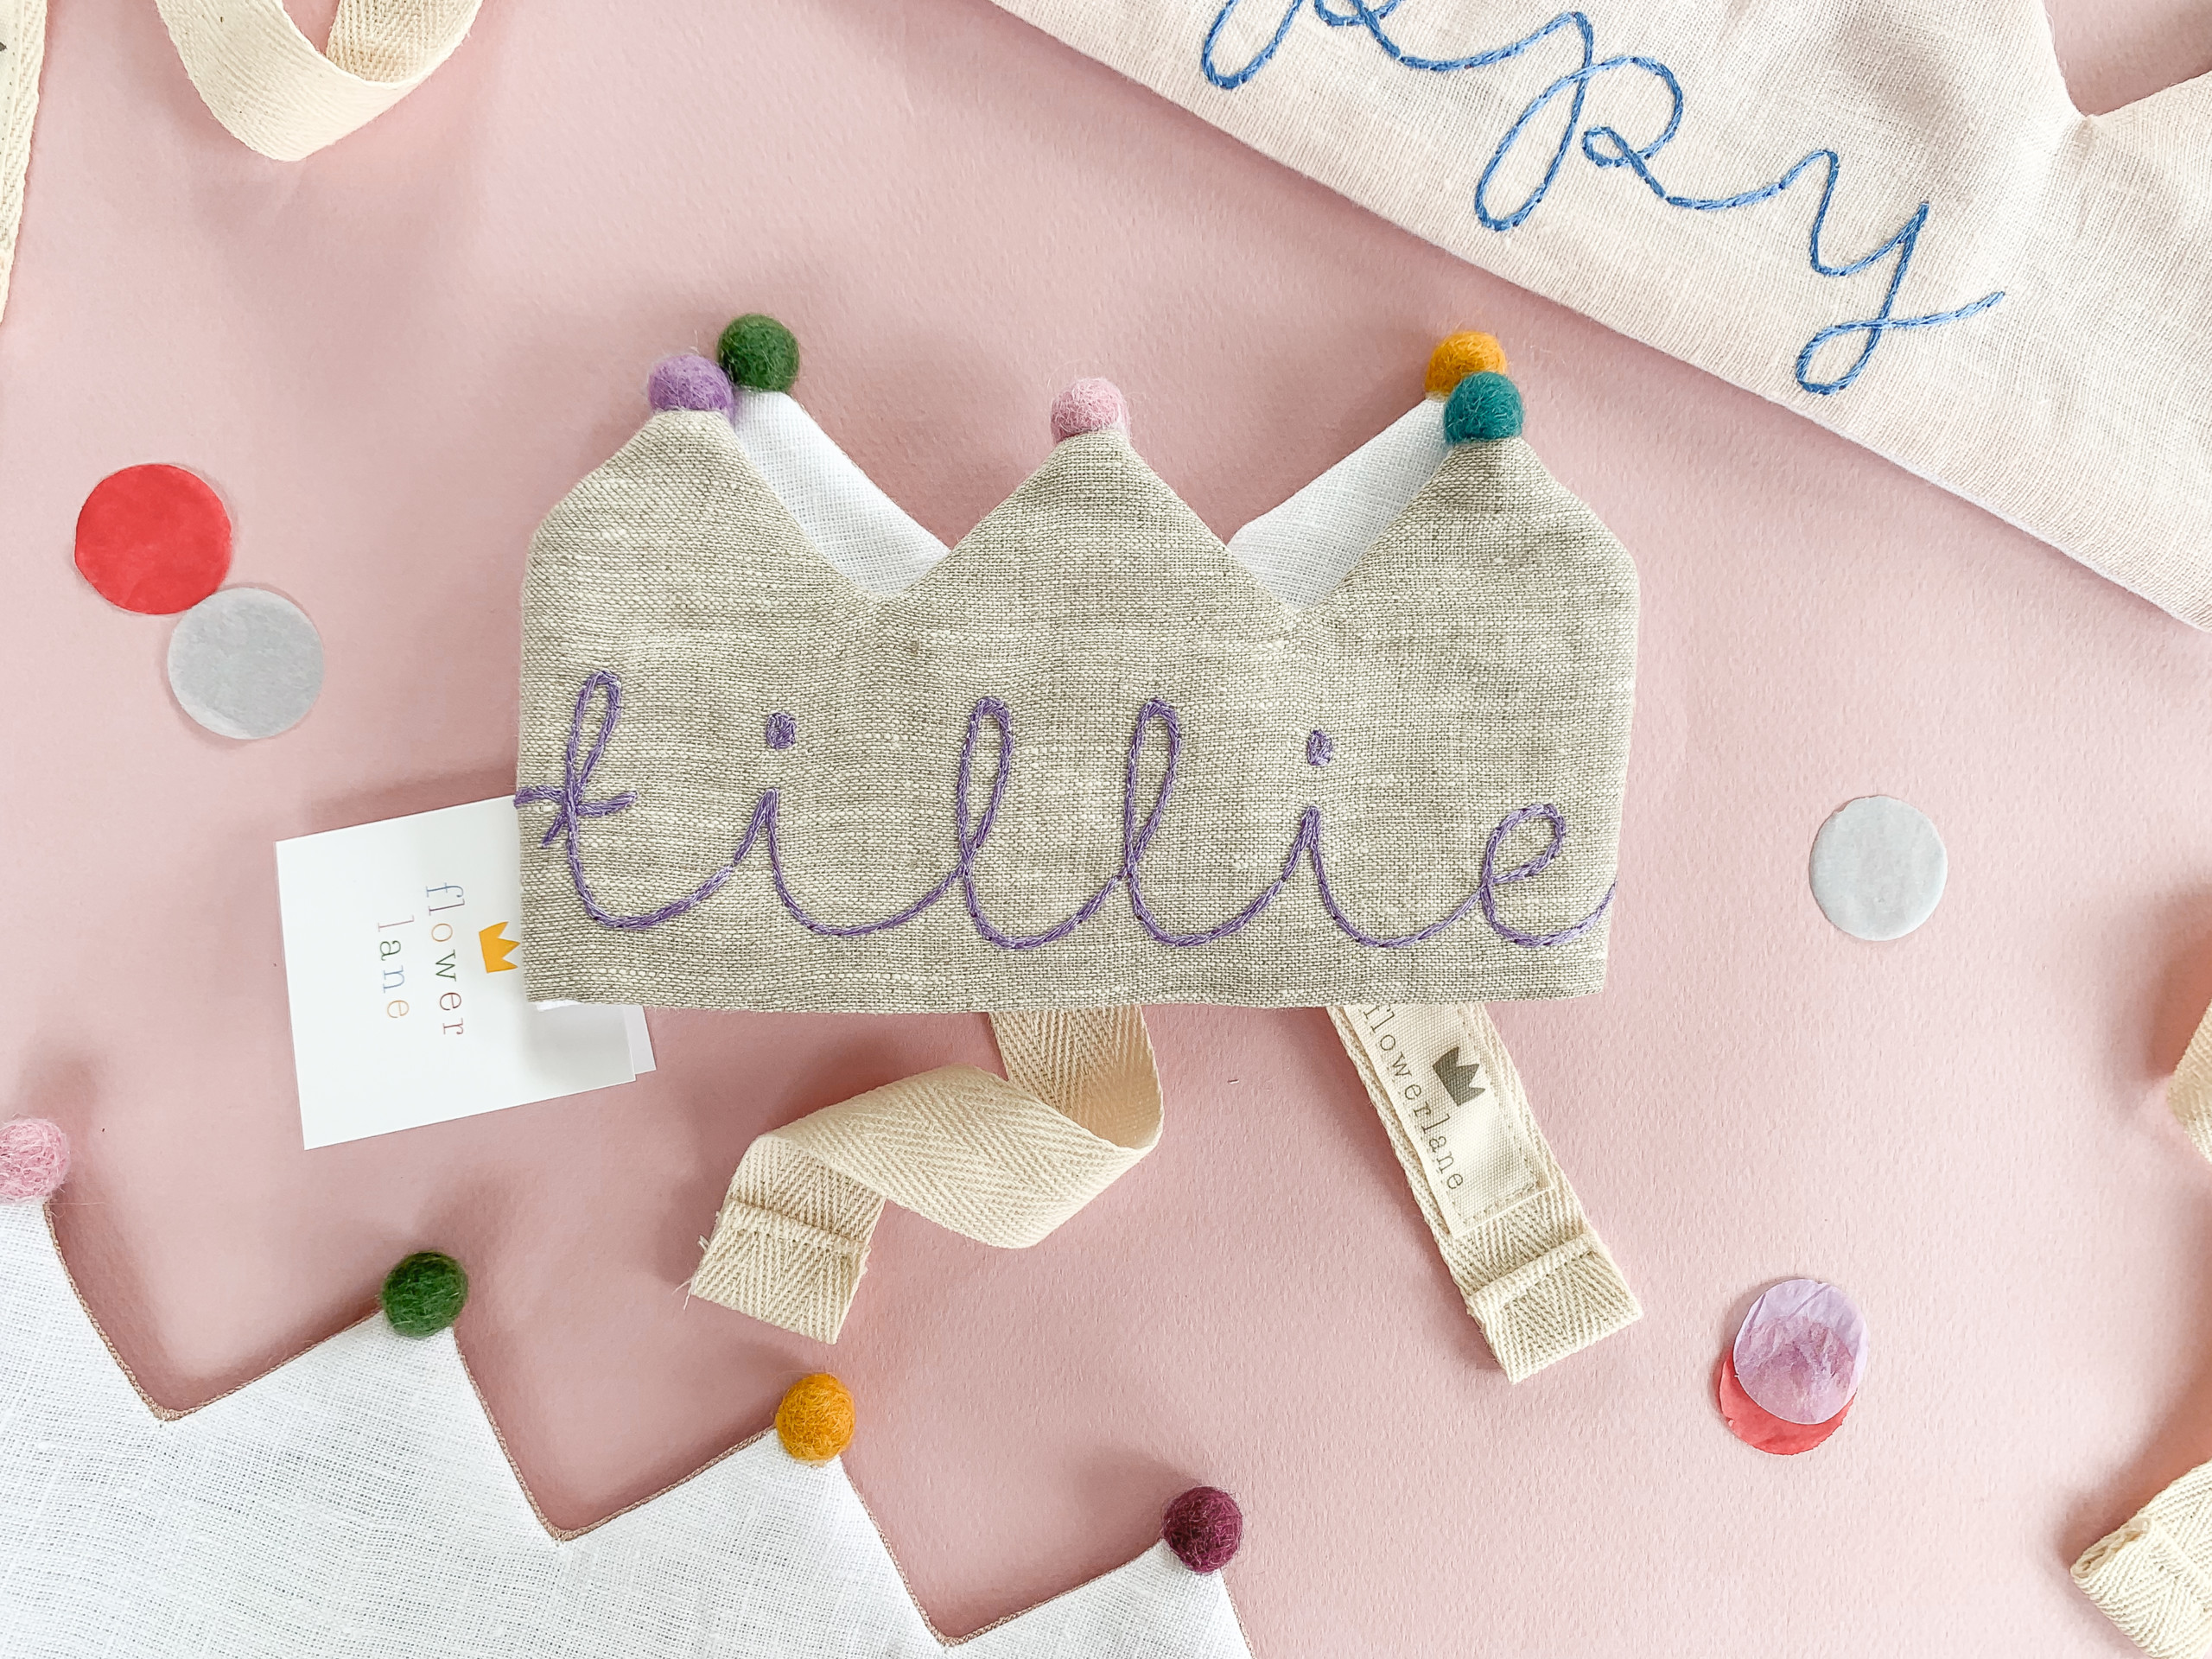 """A grey linen kids birthday crown with rainbow pom poms and the name """"tillie"""" embroidered on it. It's on a pink background."""